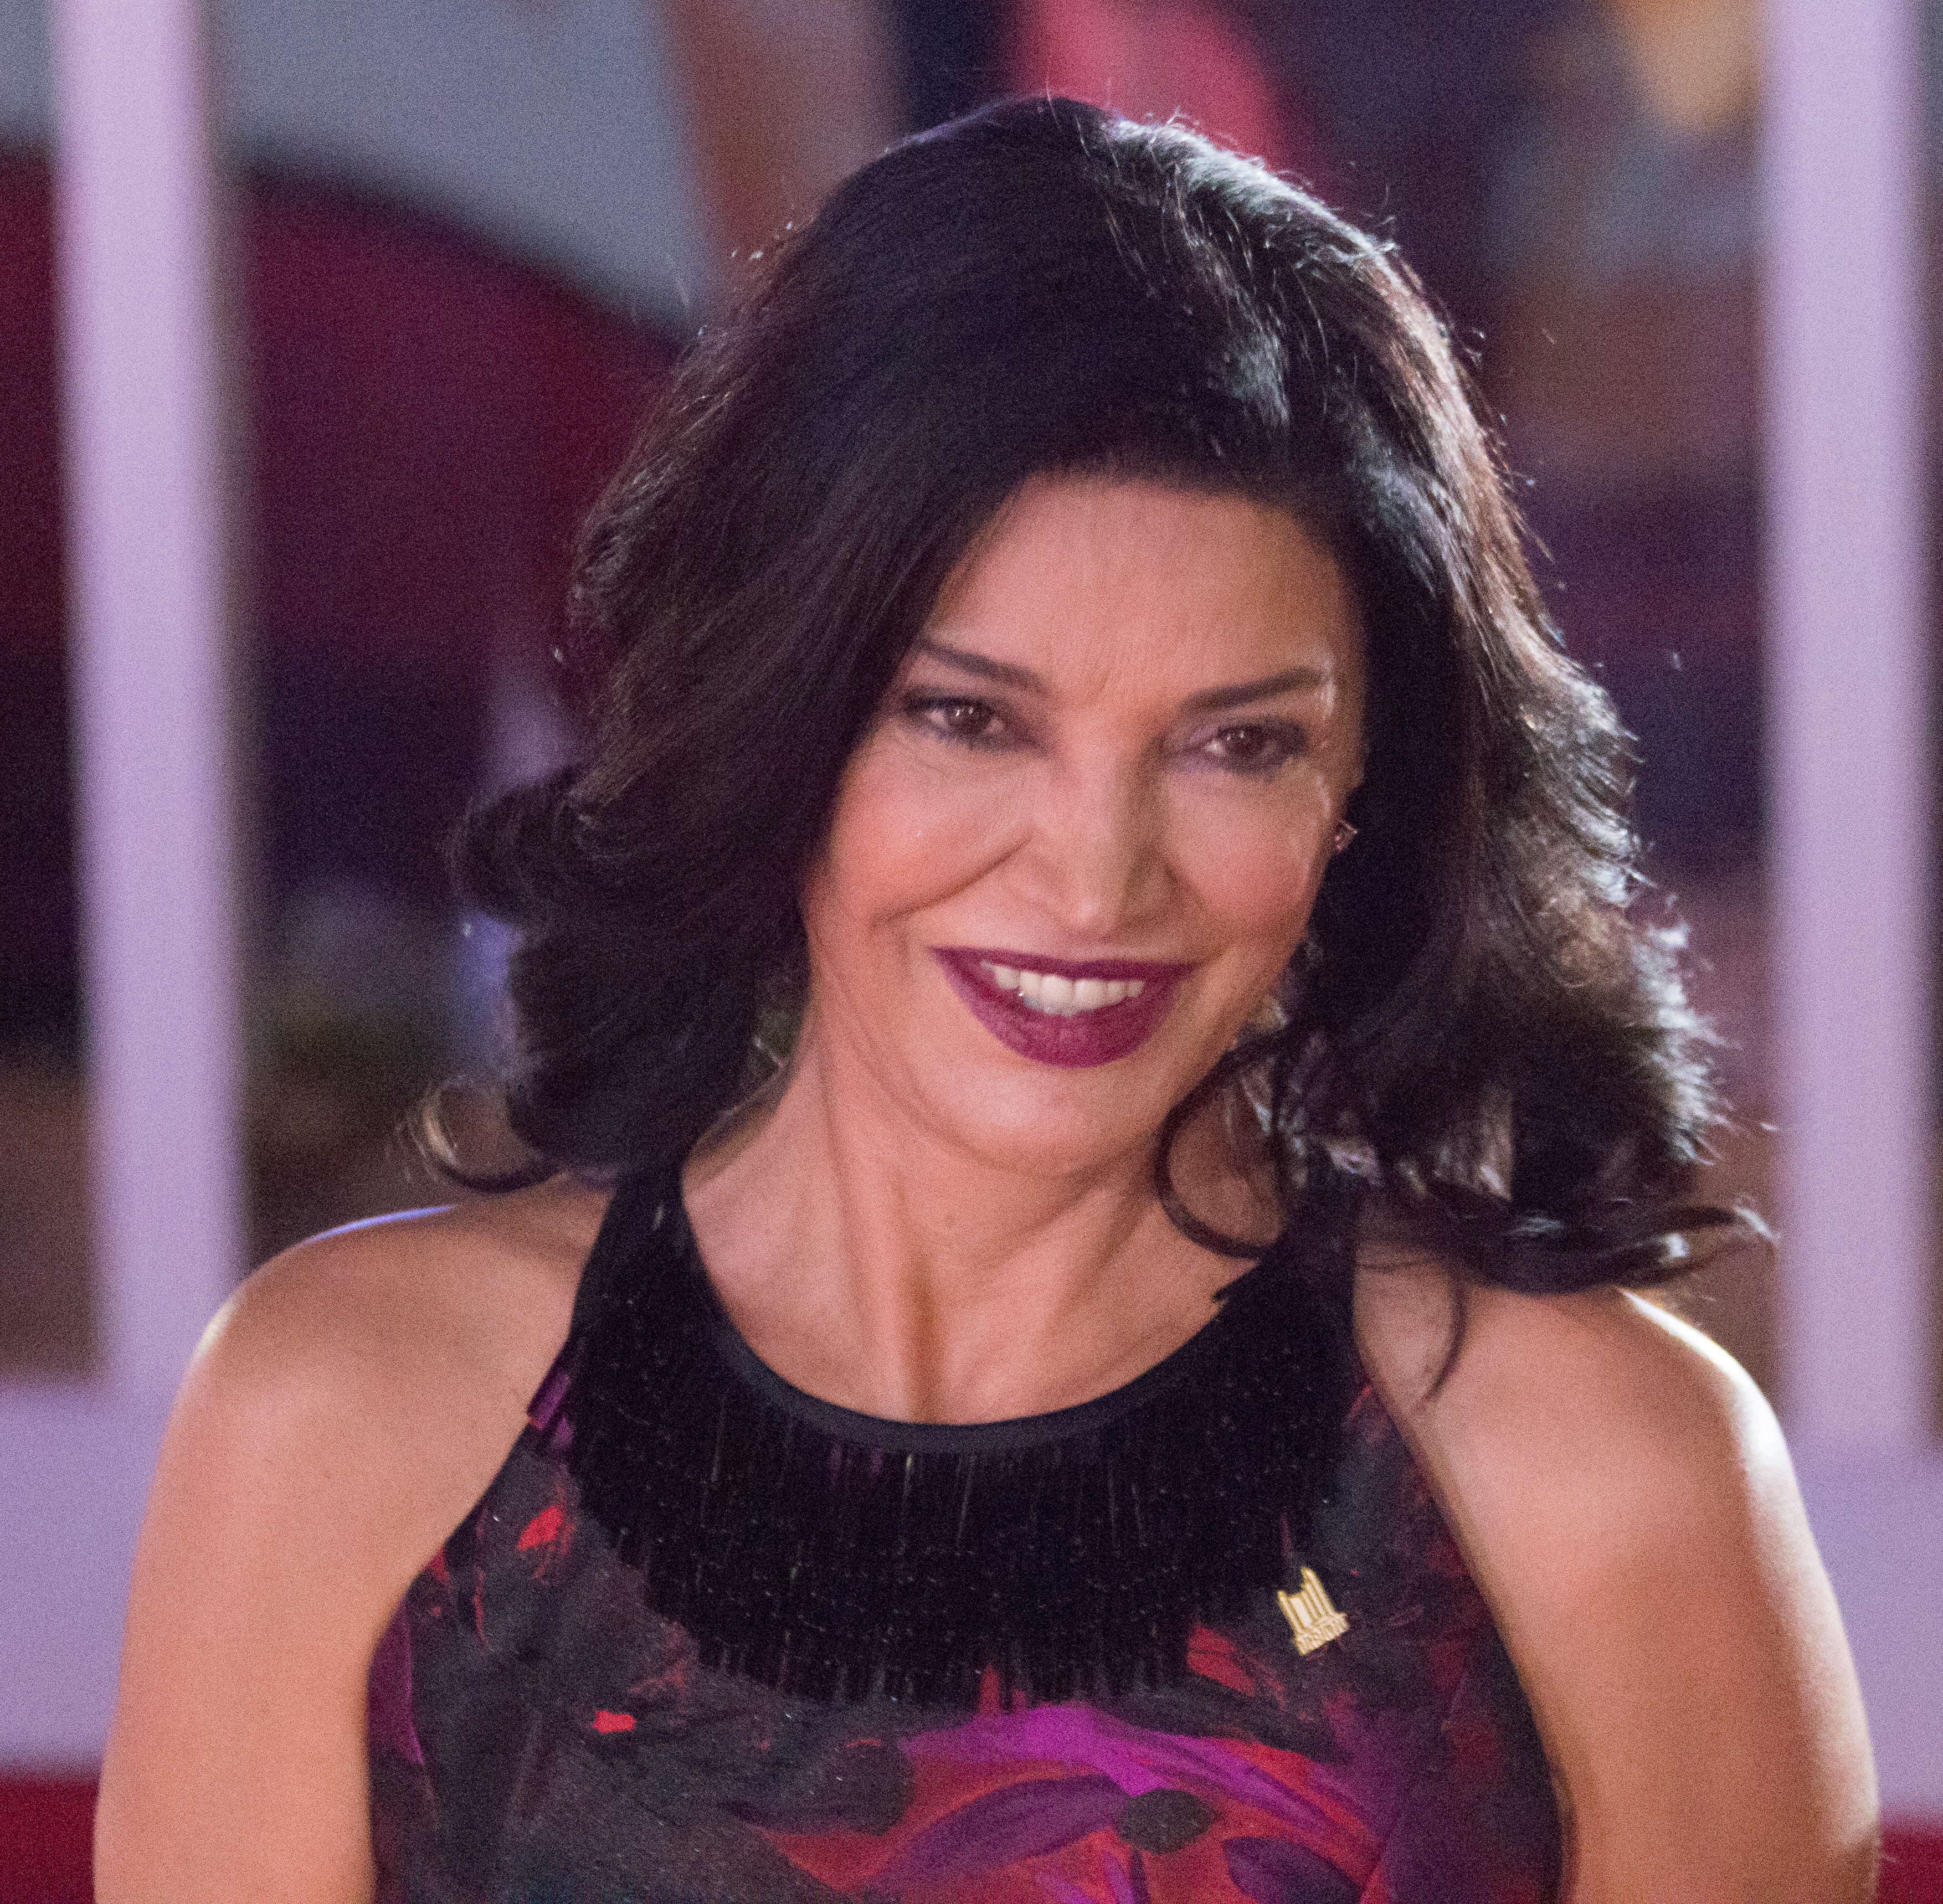 Shohreh Aghdashloo nudes (59 foto and video), Tits, Cleavage, Twitter, legs 2019